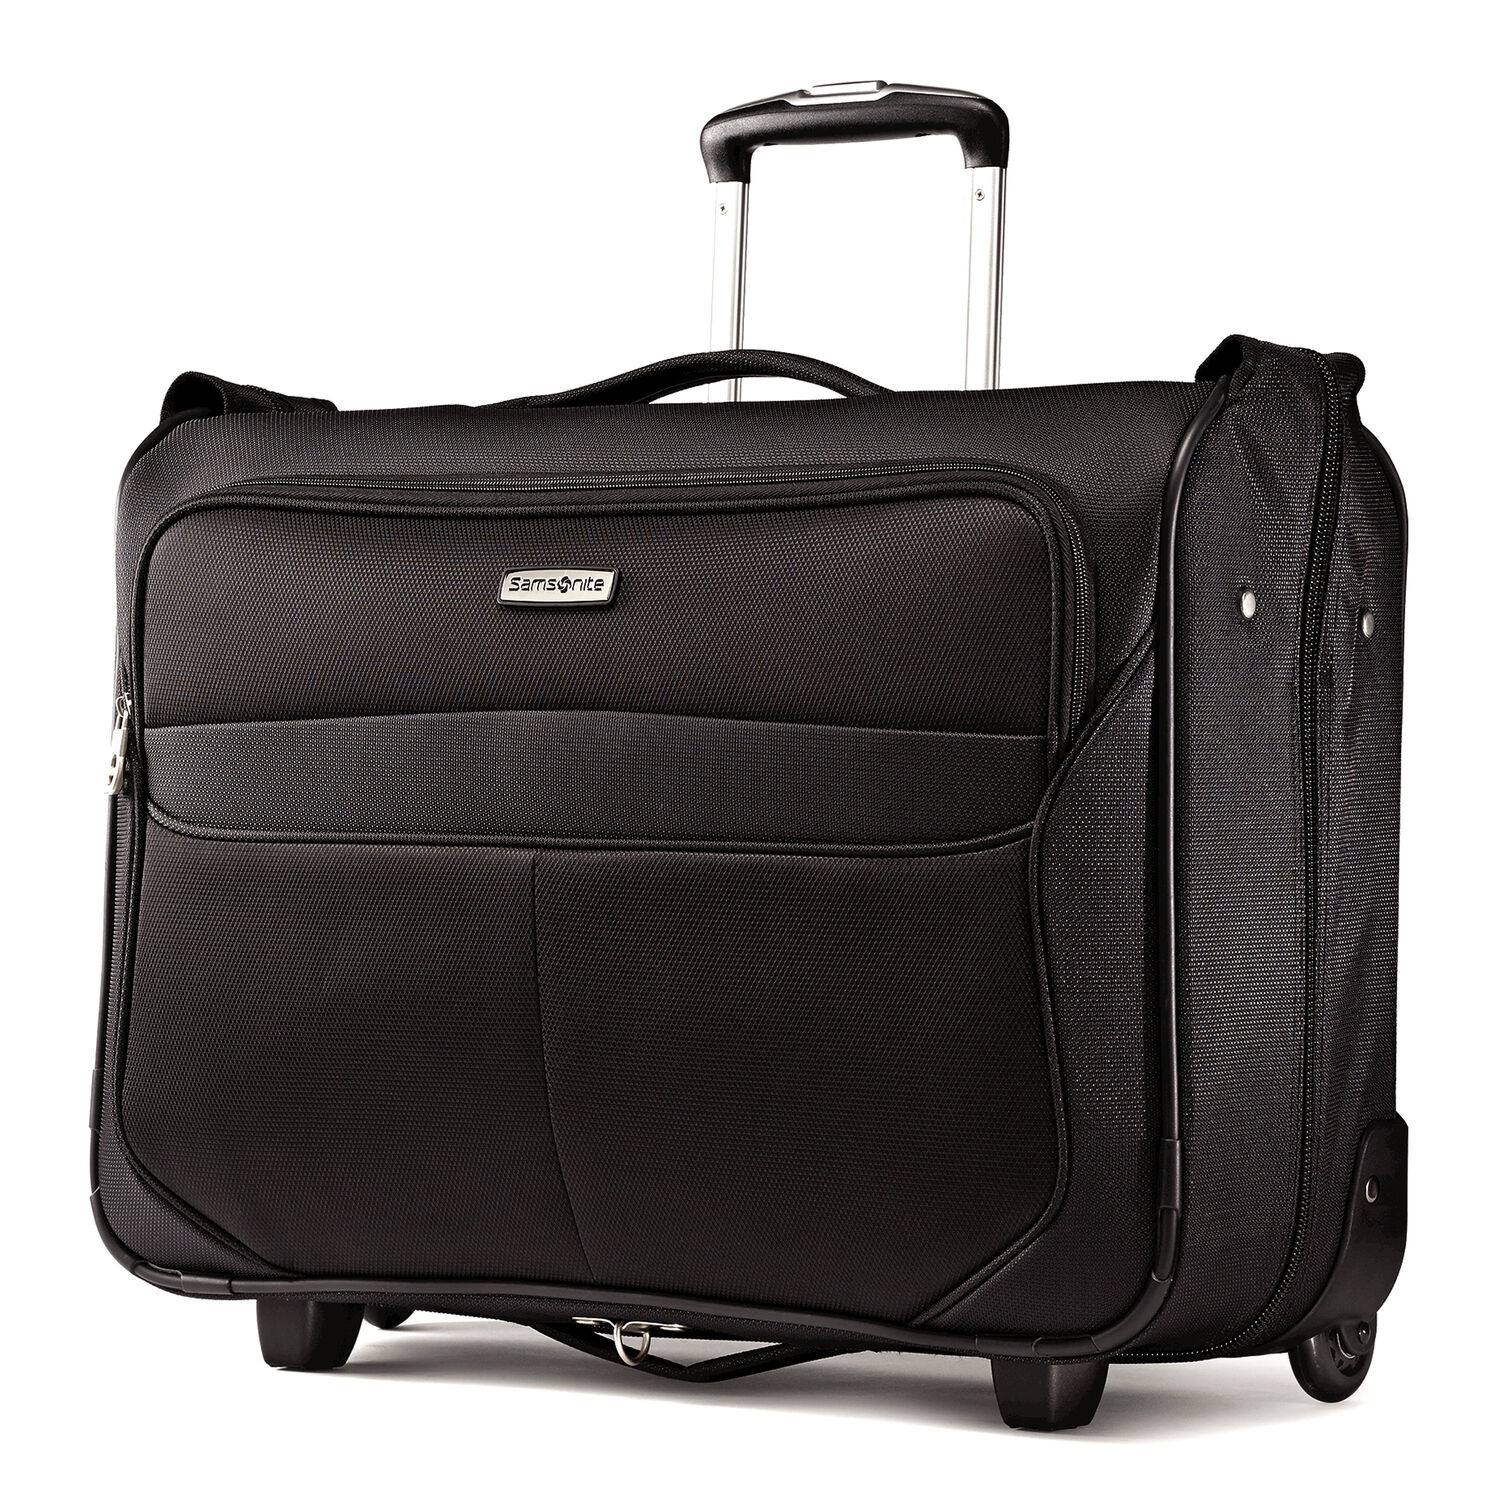 Samsonite Lift 2 Carry On Wheeled Garment Bag In The Color Black